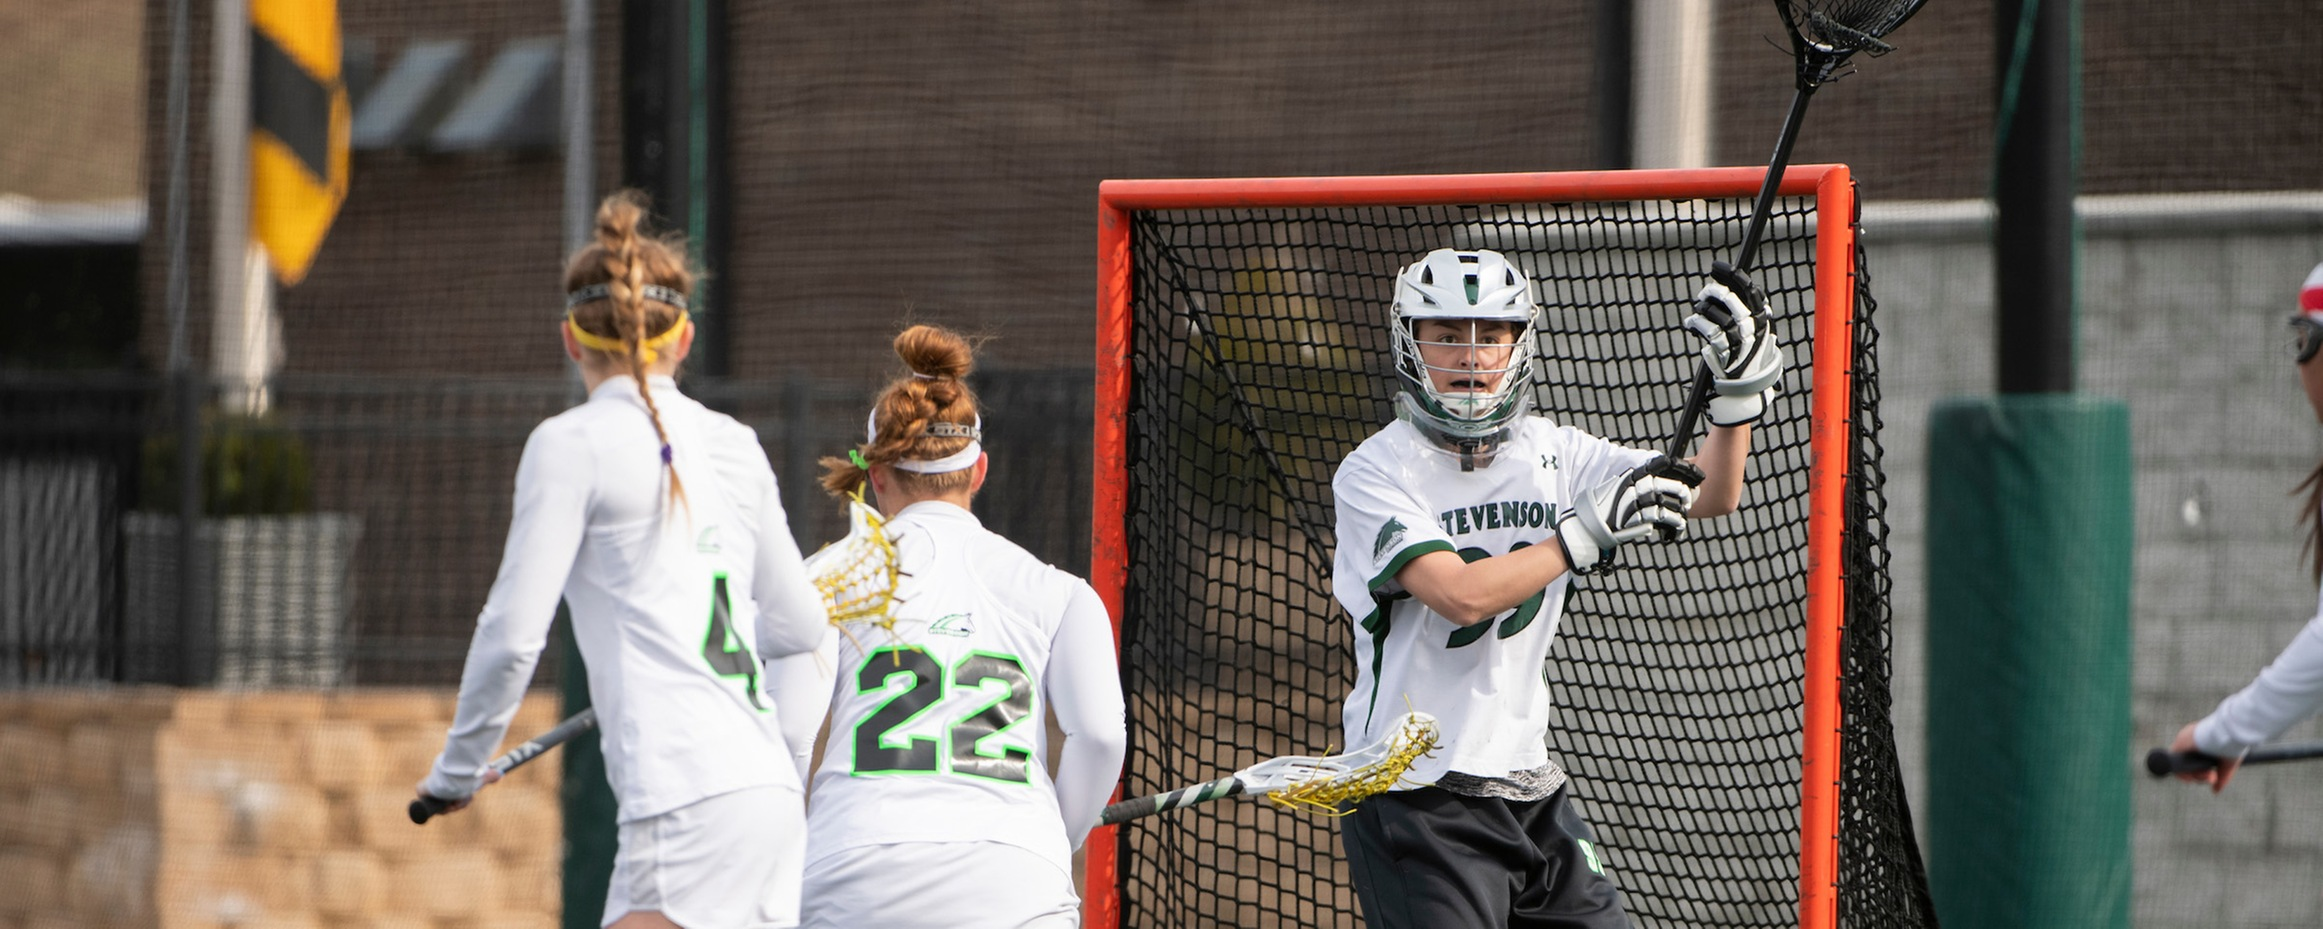 Ferguson's 12 Saves Leads Mustangs to 11-7 Victory Over LVC